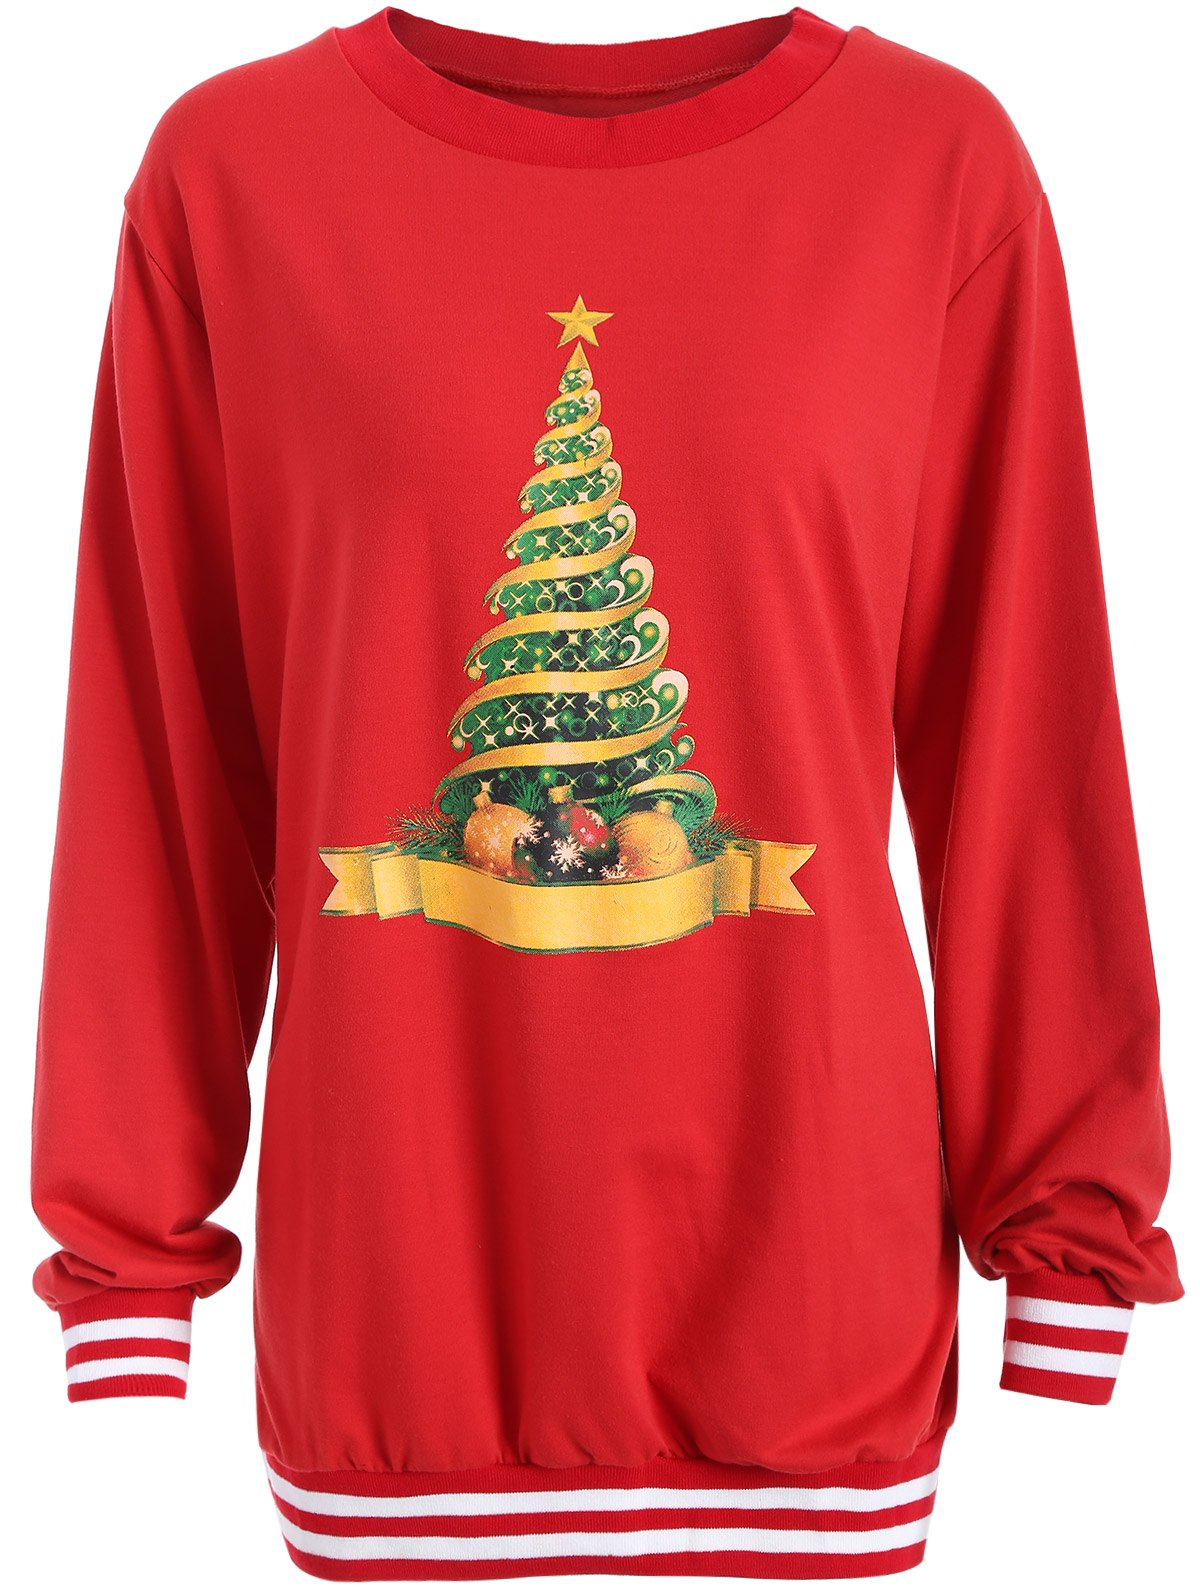 Christmas Tree Varsity Striped SweatshirtWOMEN<br><br>Size: 2XL; Color: RED; Material: Cotton,Polyester; Shirt Length: Long; Sleeve Length: Full; Style: Fashion; Pattern Style: Print; Season: Fall,Spring,Winter; Weight: 0.362kg; Package Contents: 1 x Sweatshirt;